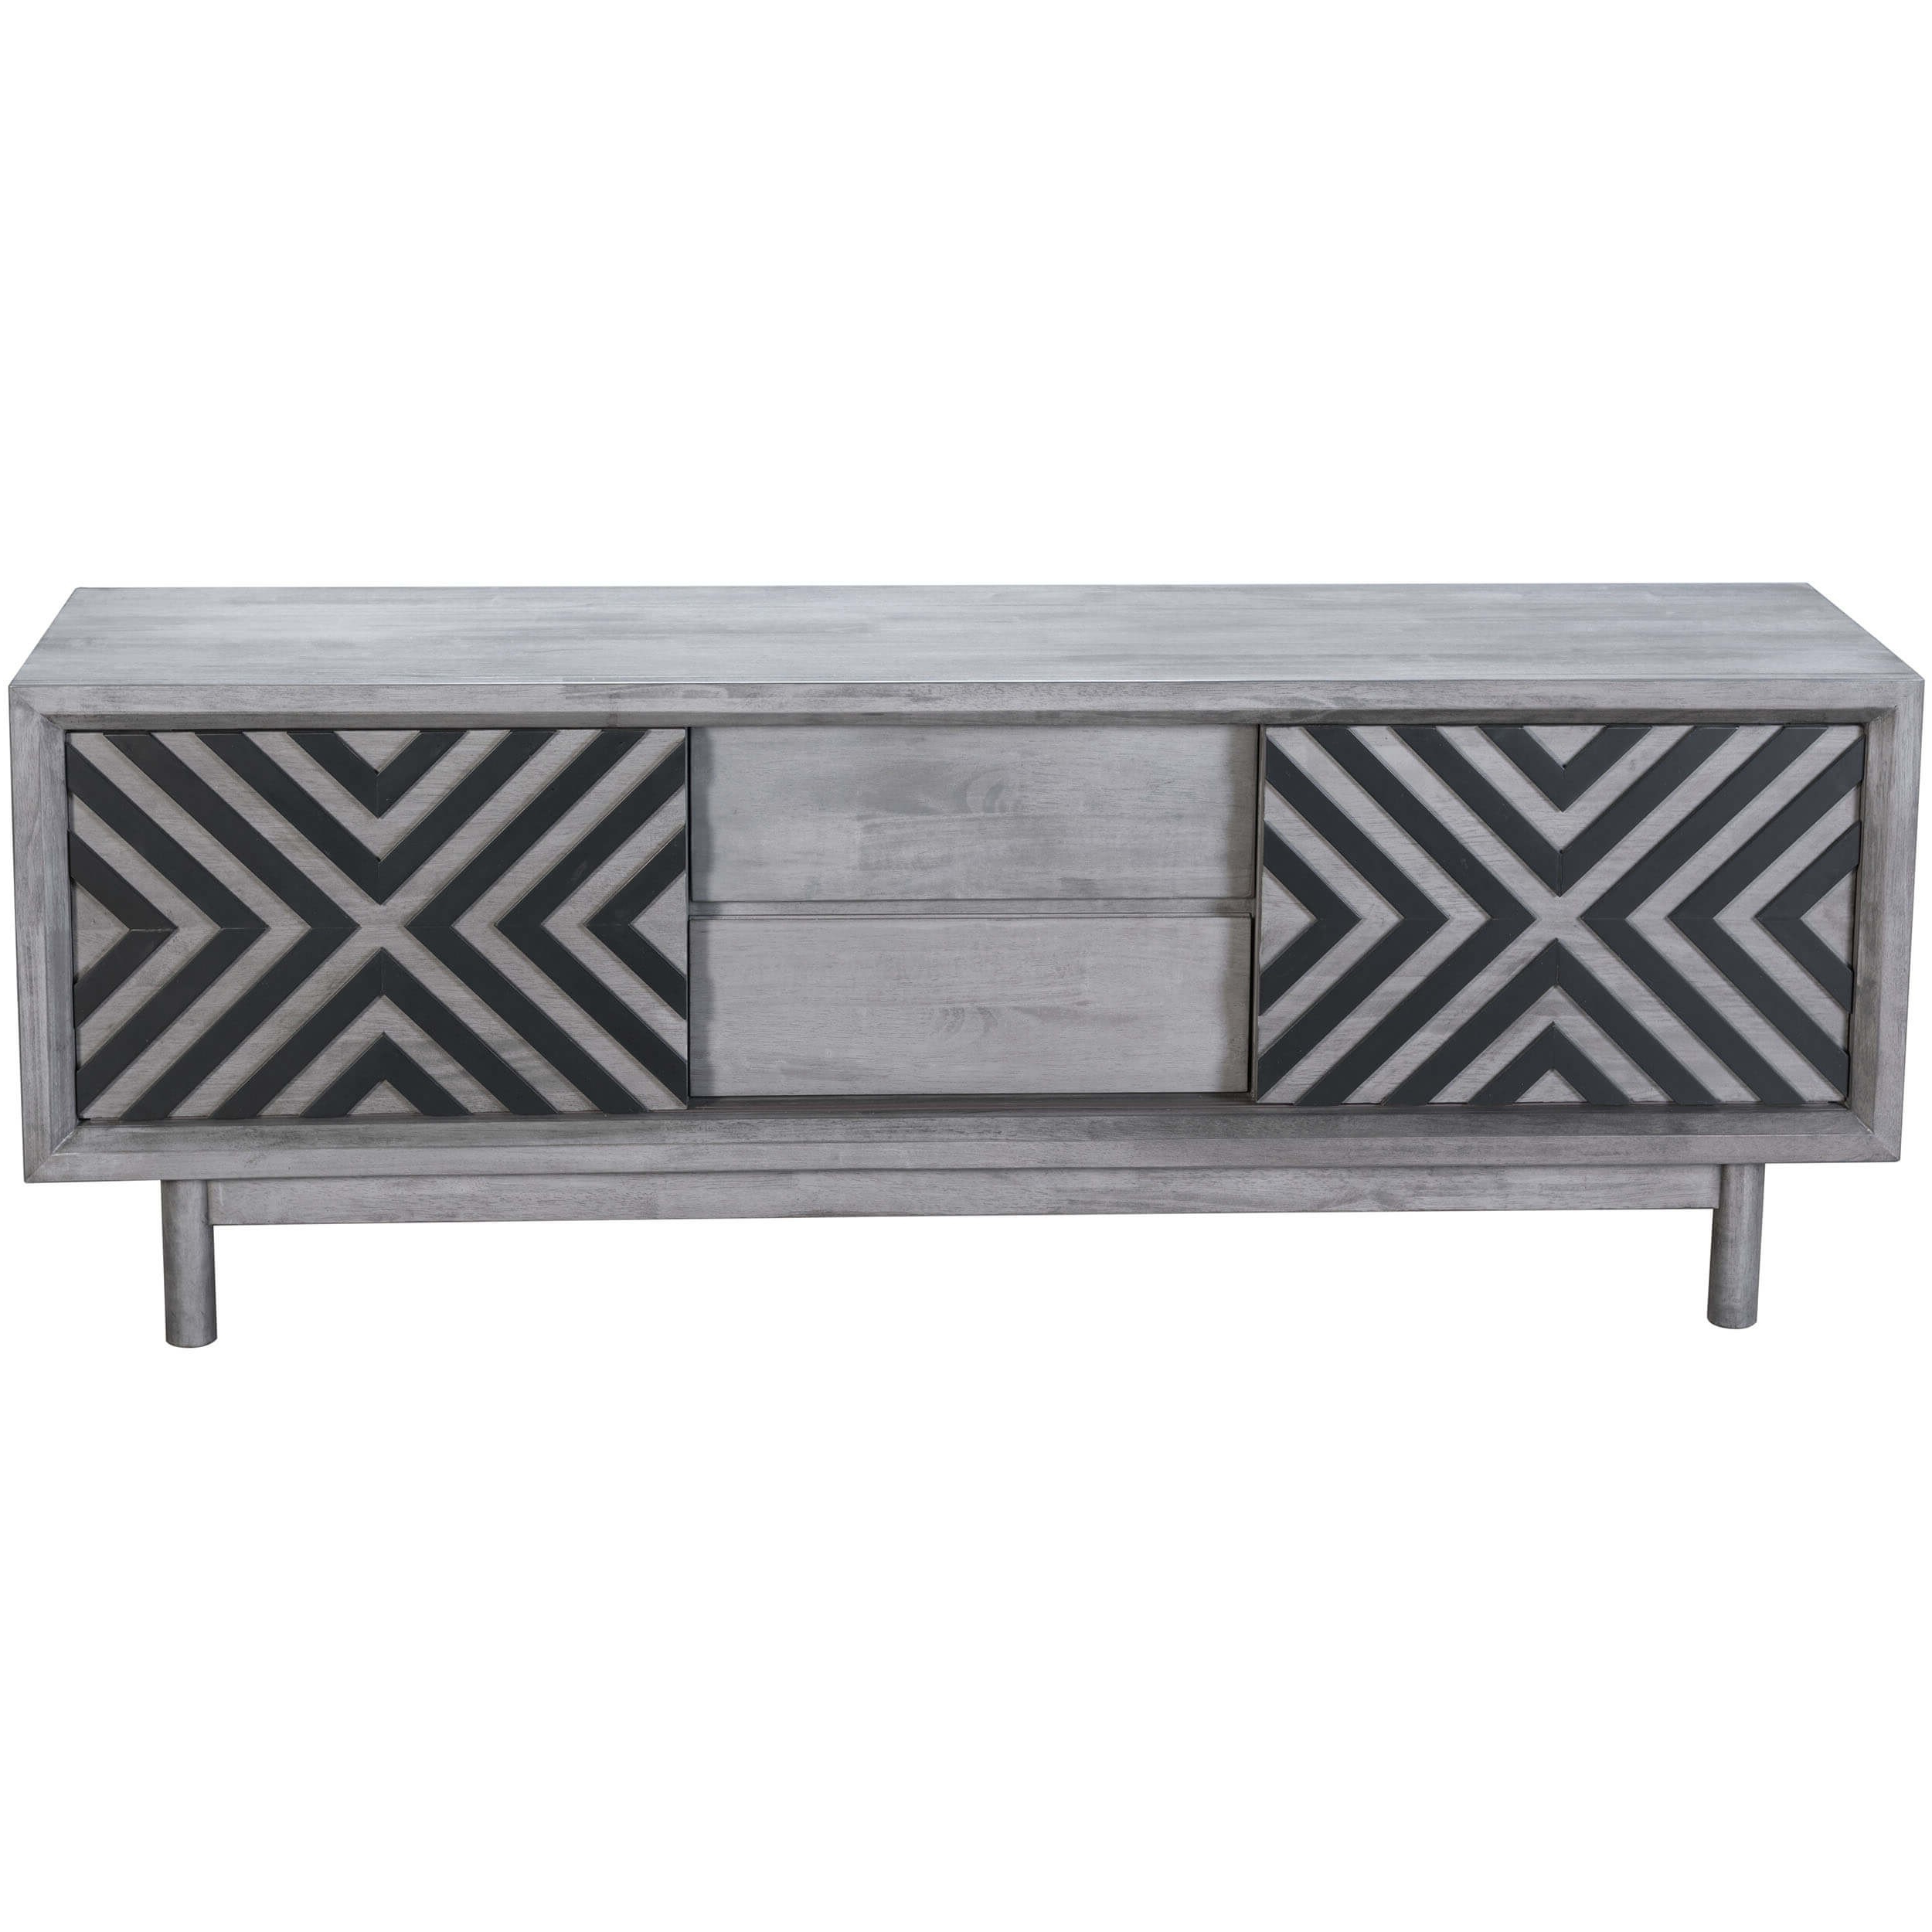 Raven Tv Stand, Old Gray – Zuo Modern – Furniture Throughout Widely Used Raven Grey Tv Stands (View 2 of 20)